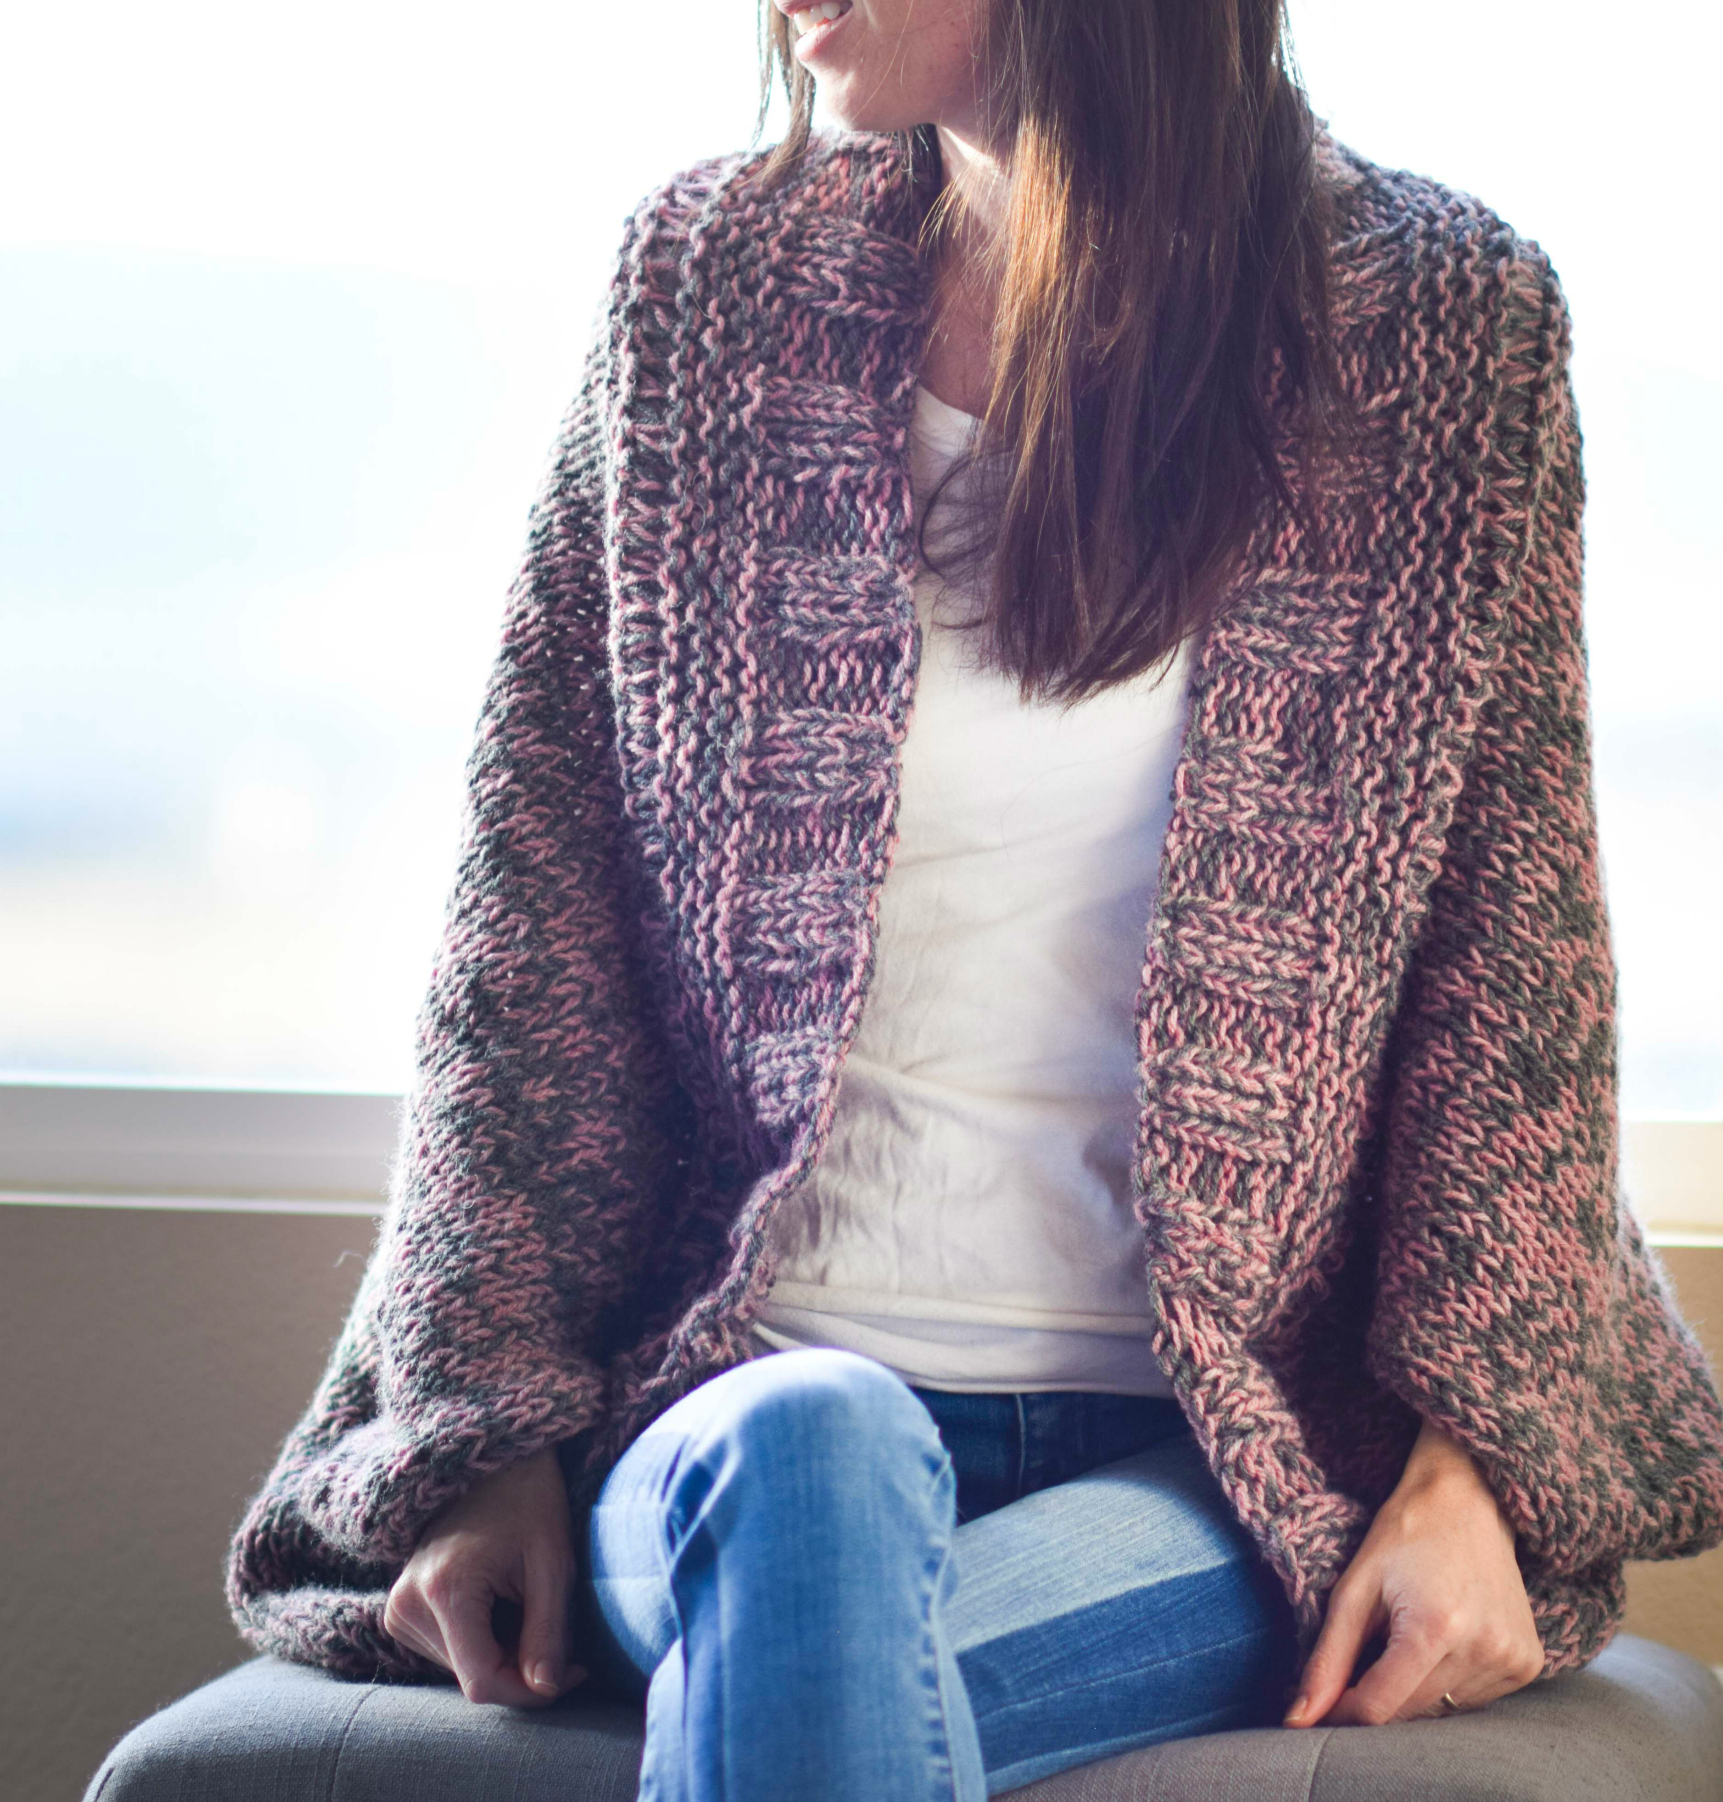 c71f0fd7c1de7 Easy Relaxed Marled Cardigan Knitting Pattern – Mama In A Stitch